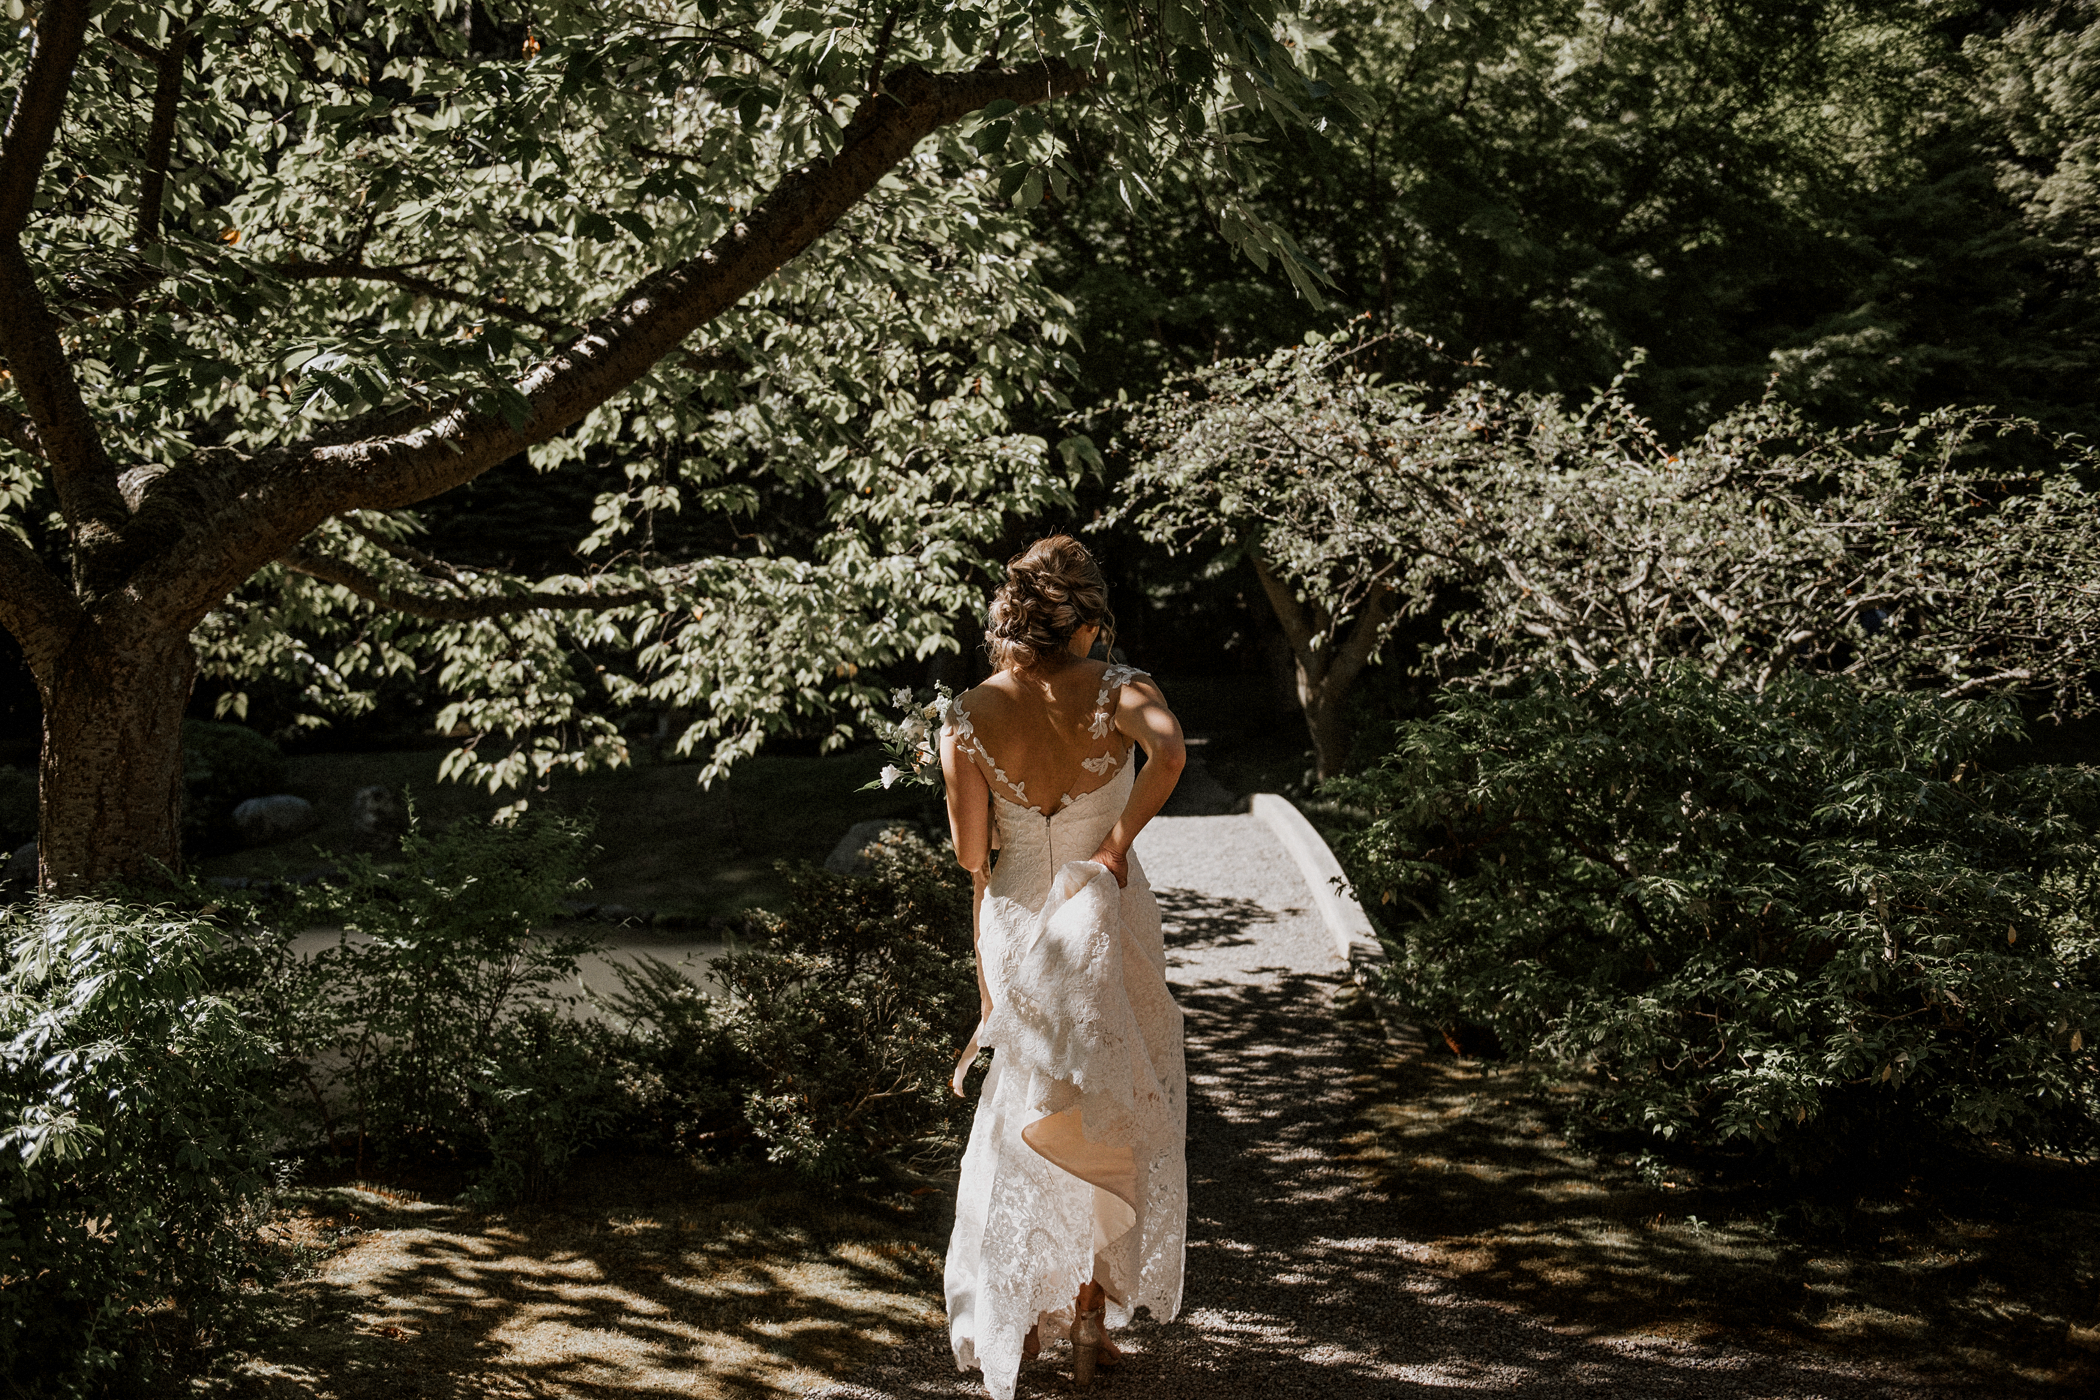 022-kaoverii-silva-vd-wedding-cecil-green-ubc-nitobe-garden-photography-blog.png